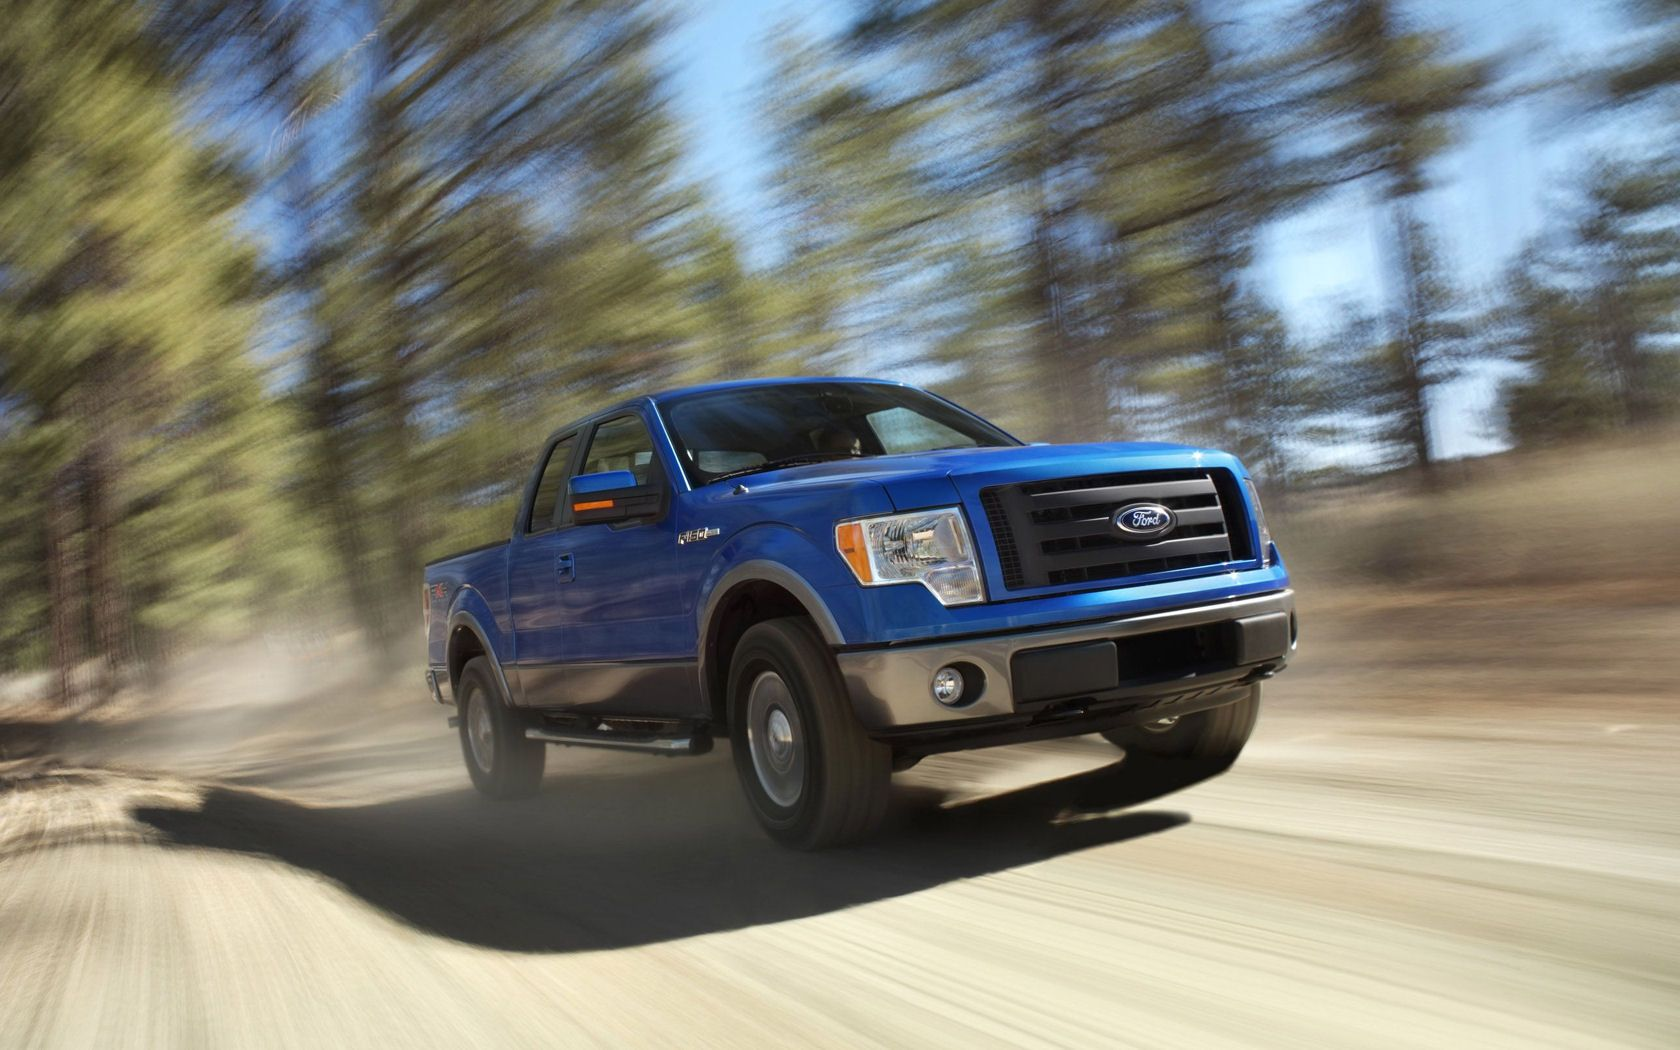 Ford F Raptor Wallpapers Wallpaper 800×500 F150 Wallpapers